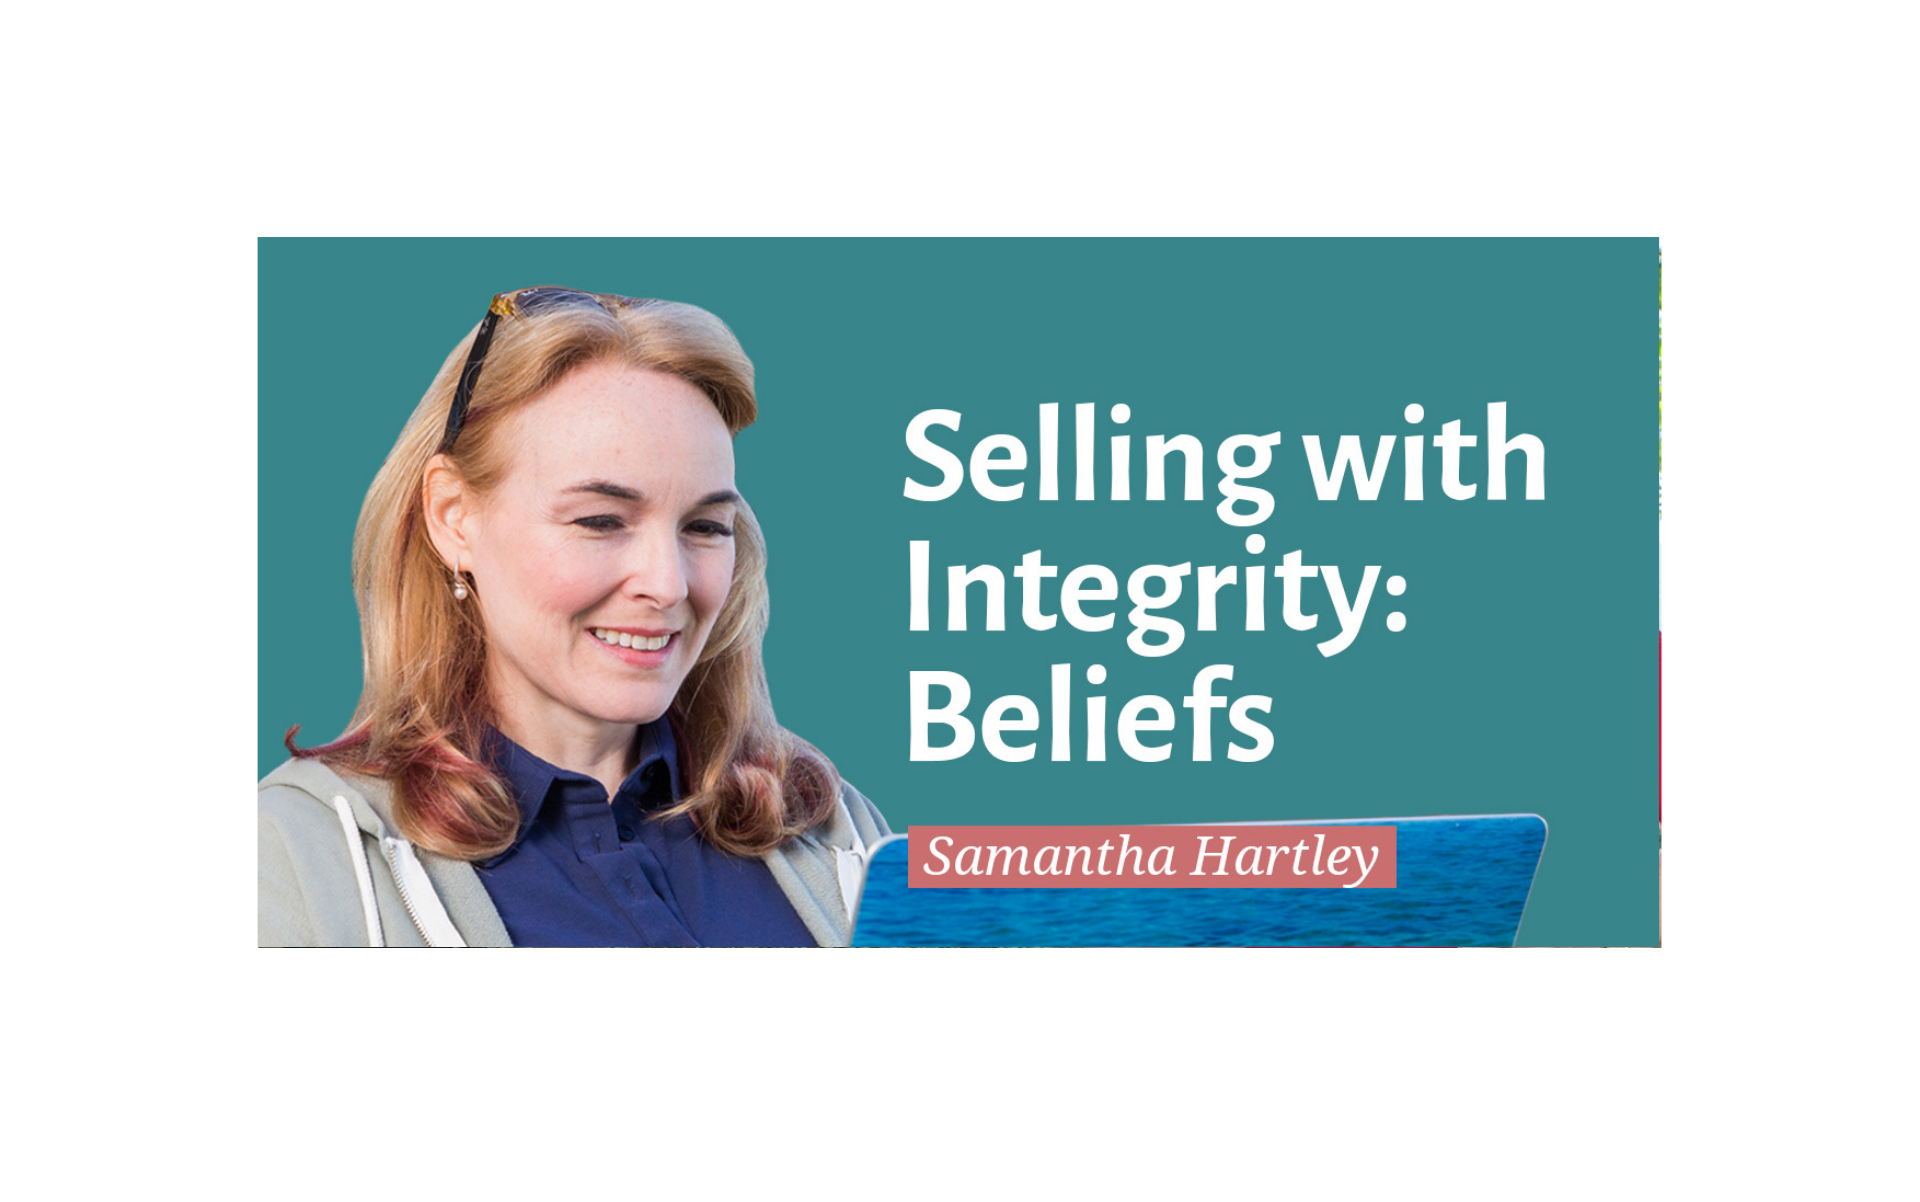 Selling with Integrity: Beliefs